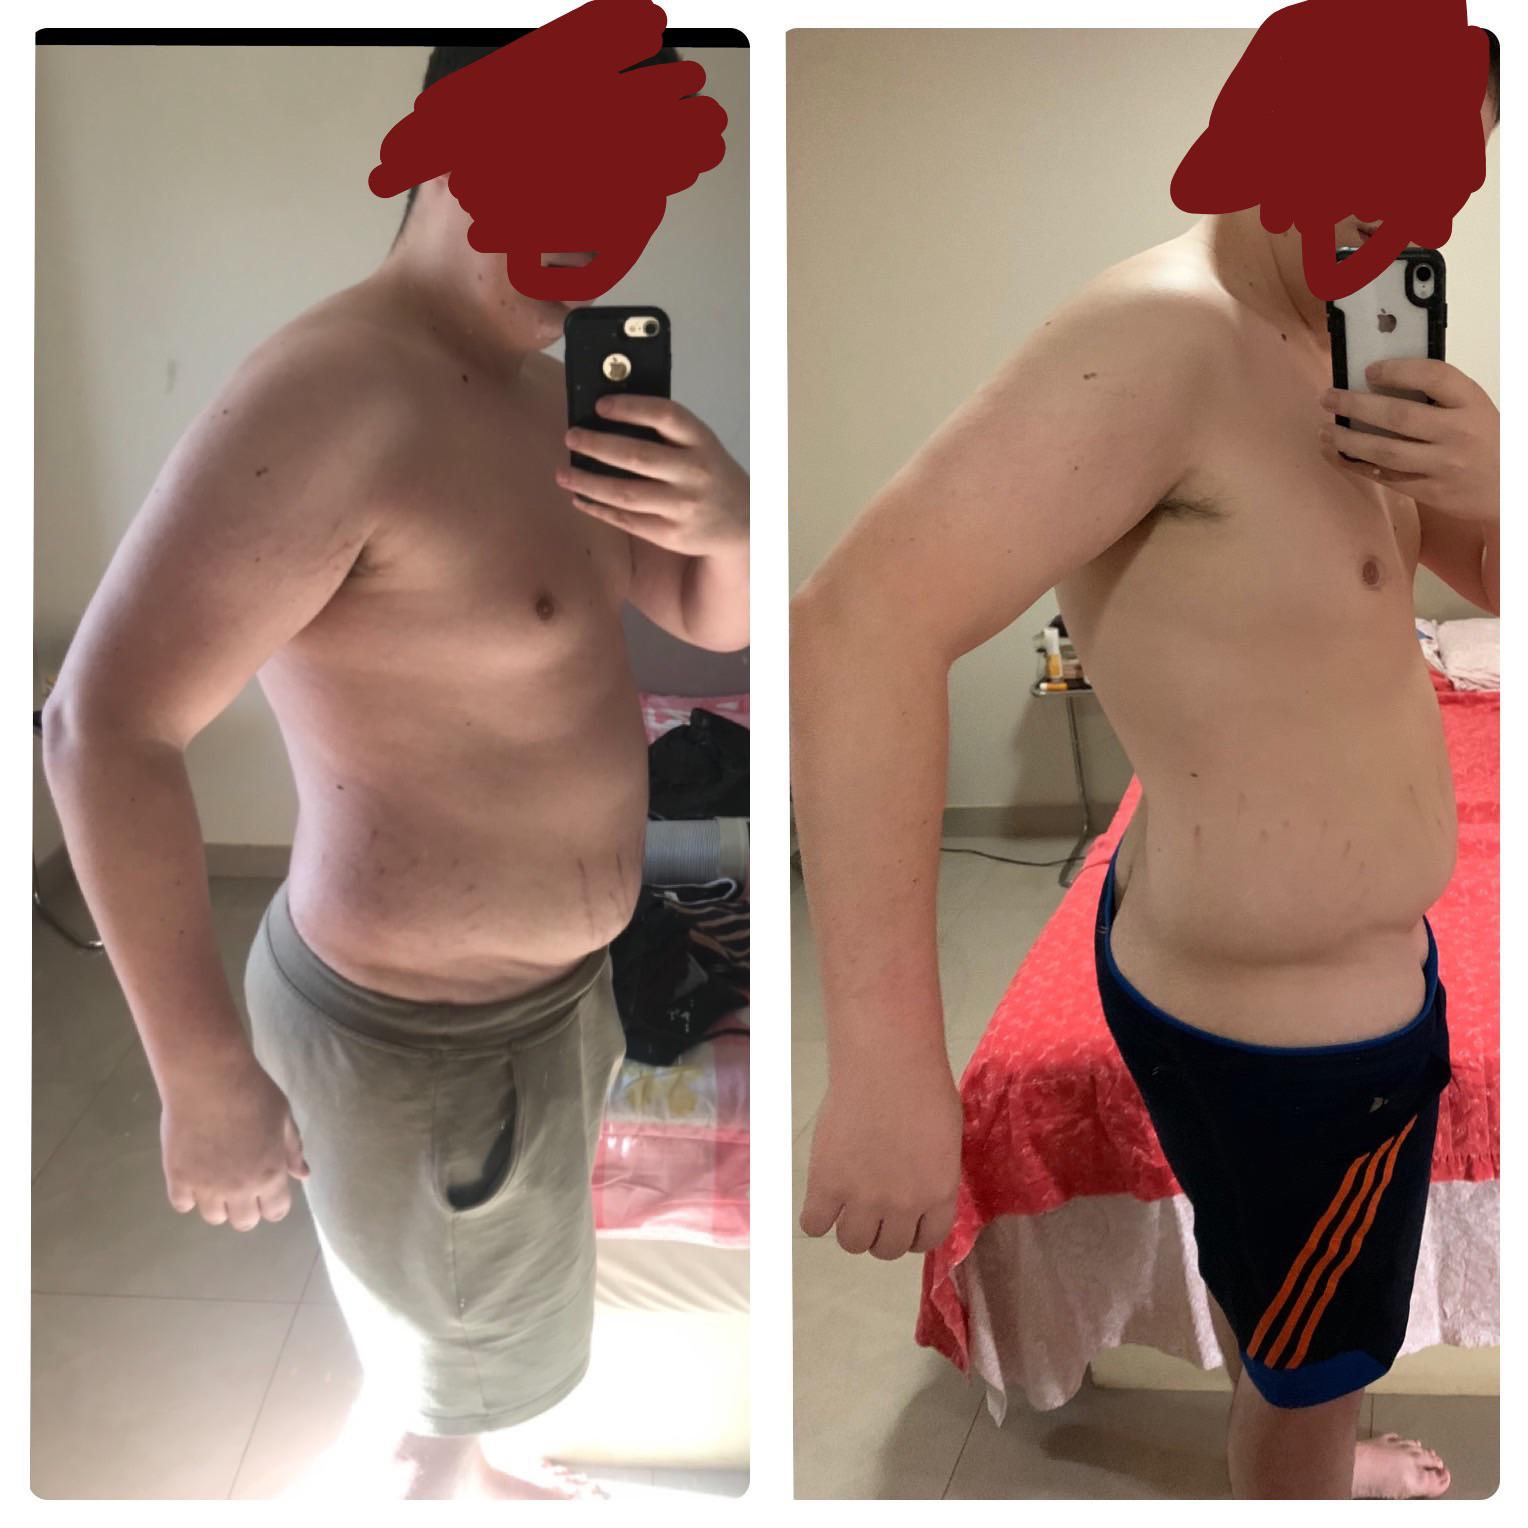 5 foot 4 Male Before and After 43 lbs Weight Loss 278 lbs to 235 lbs